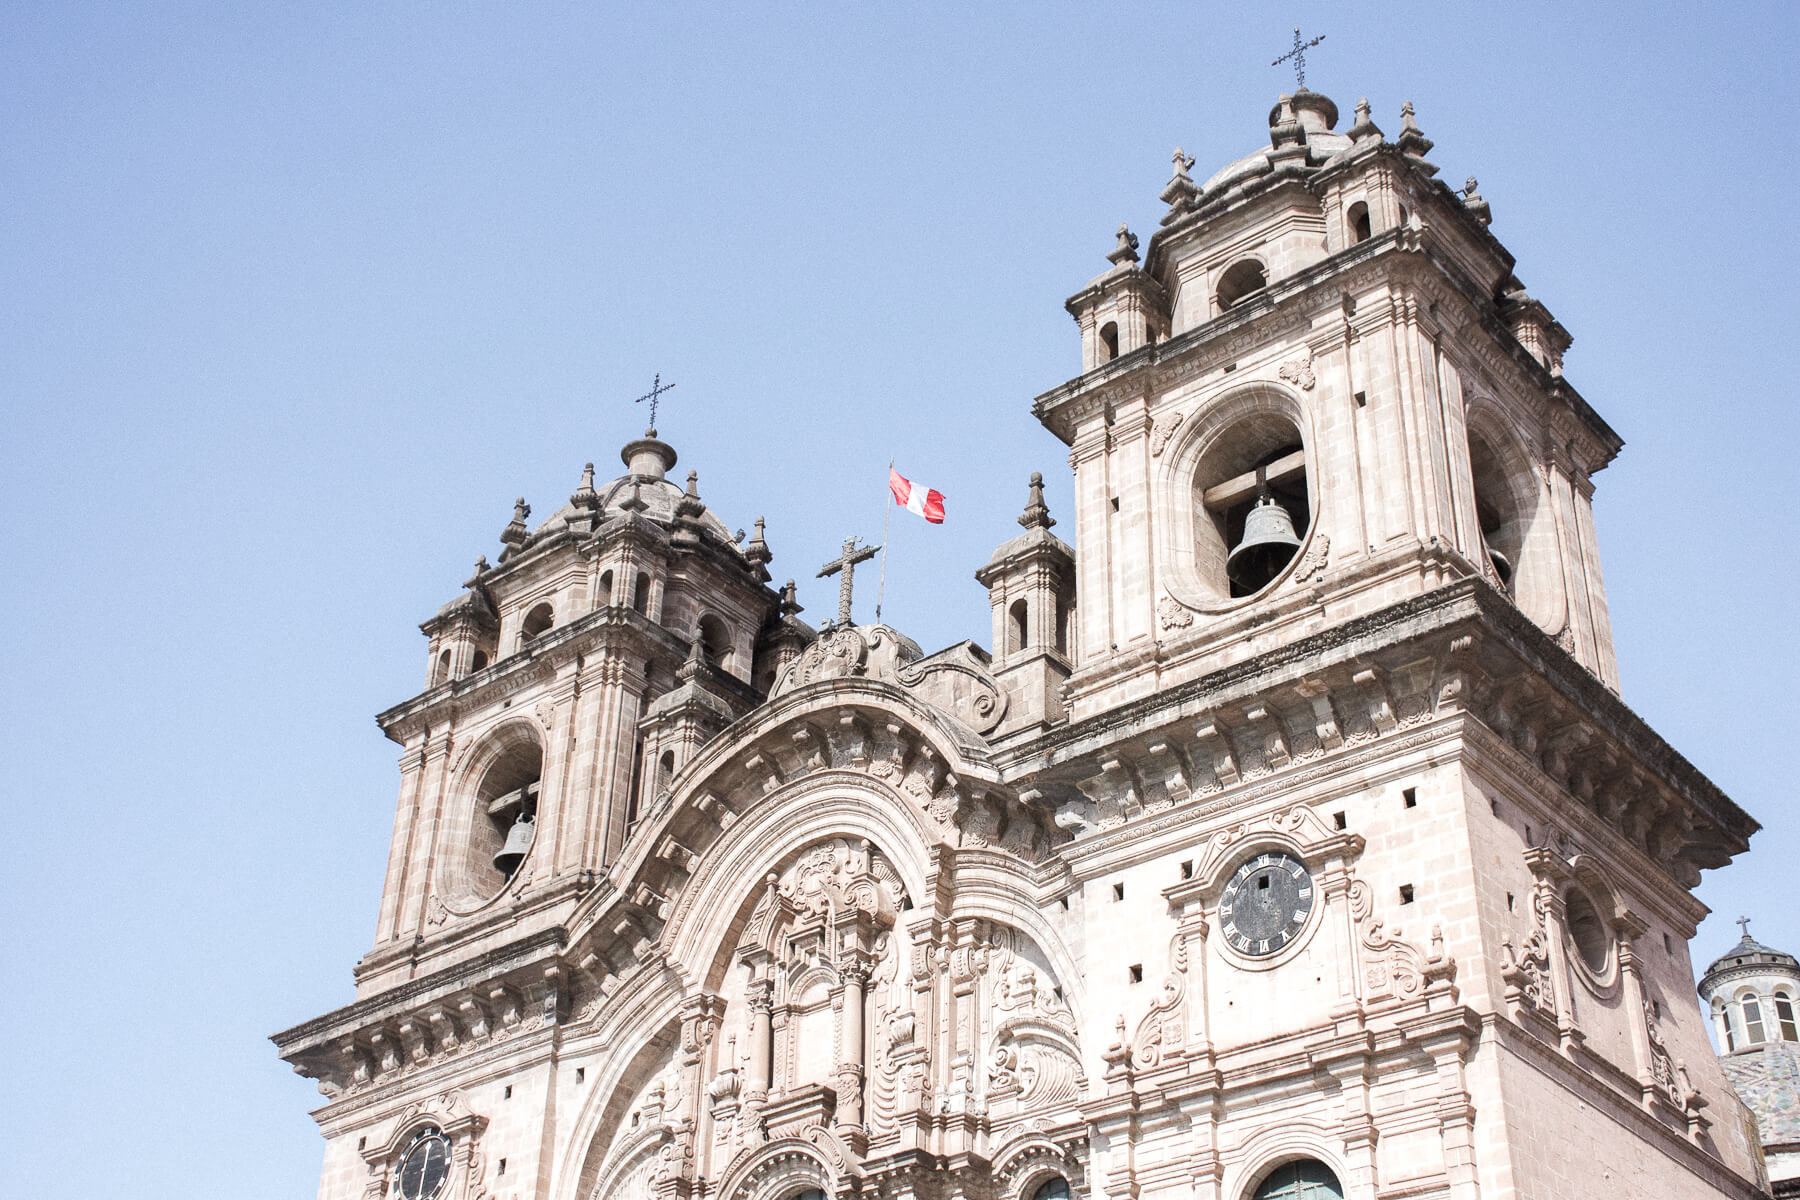 detailed church with Peruvian flag on top